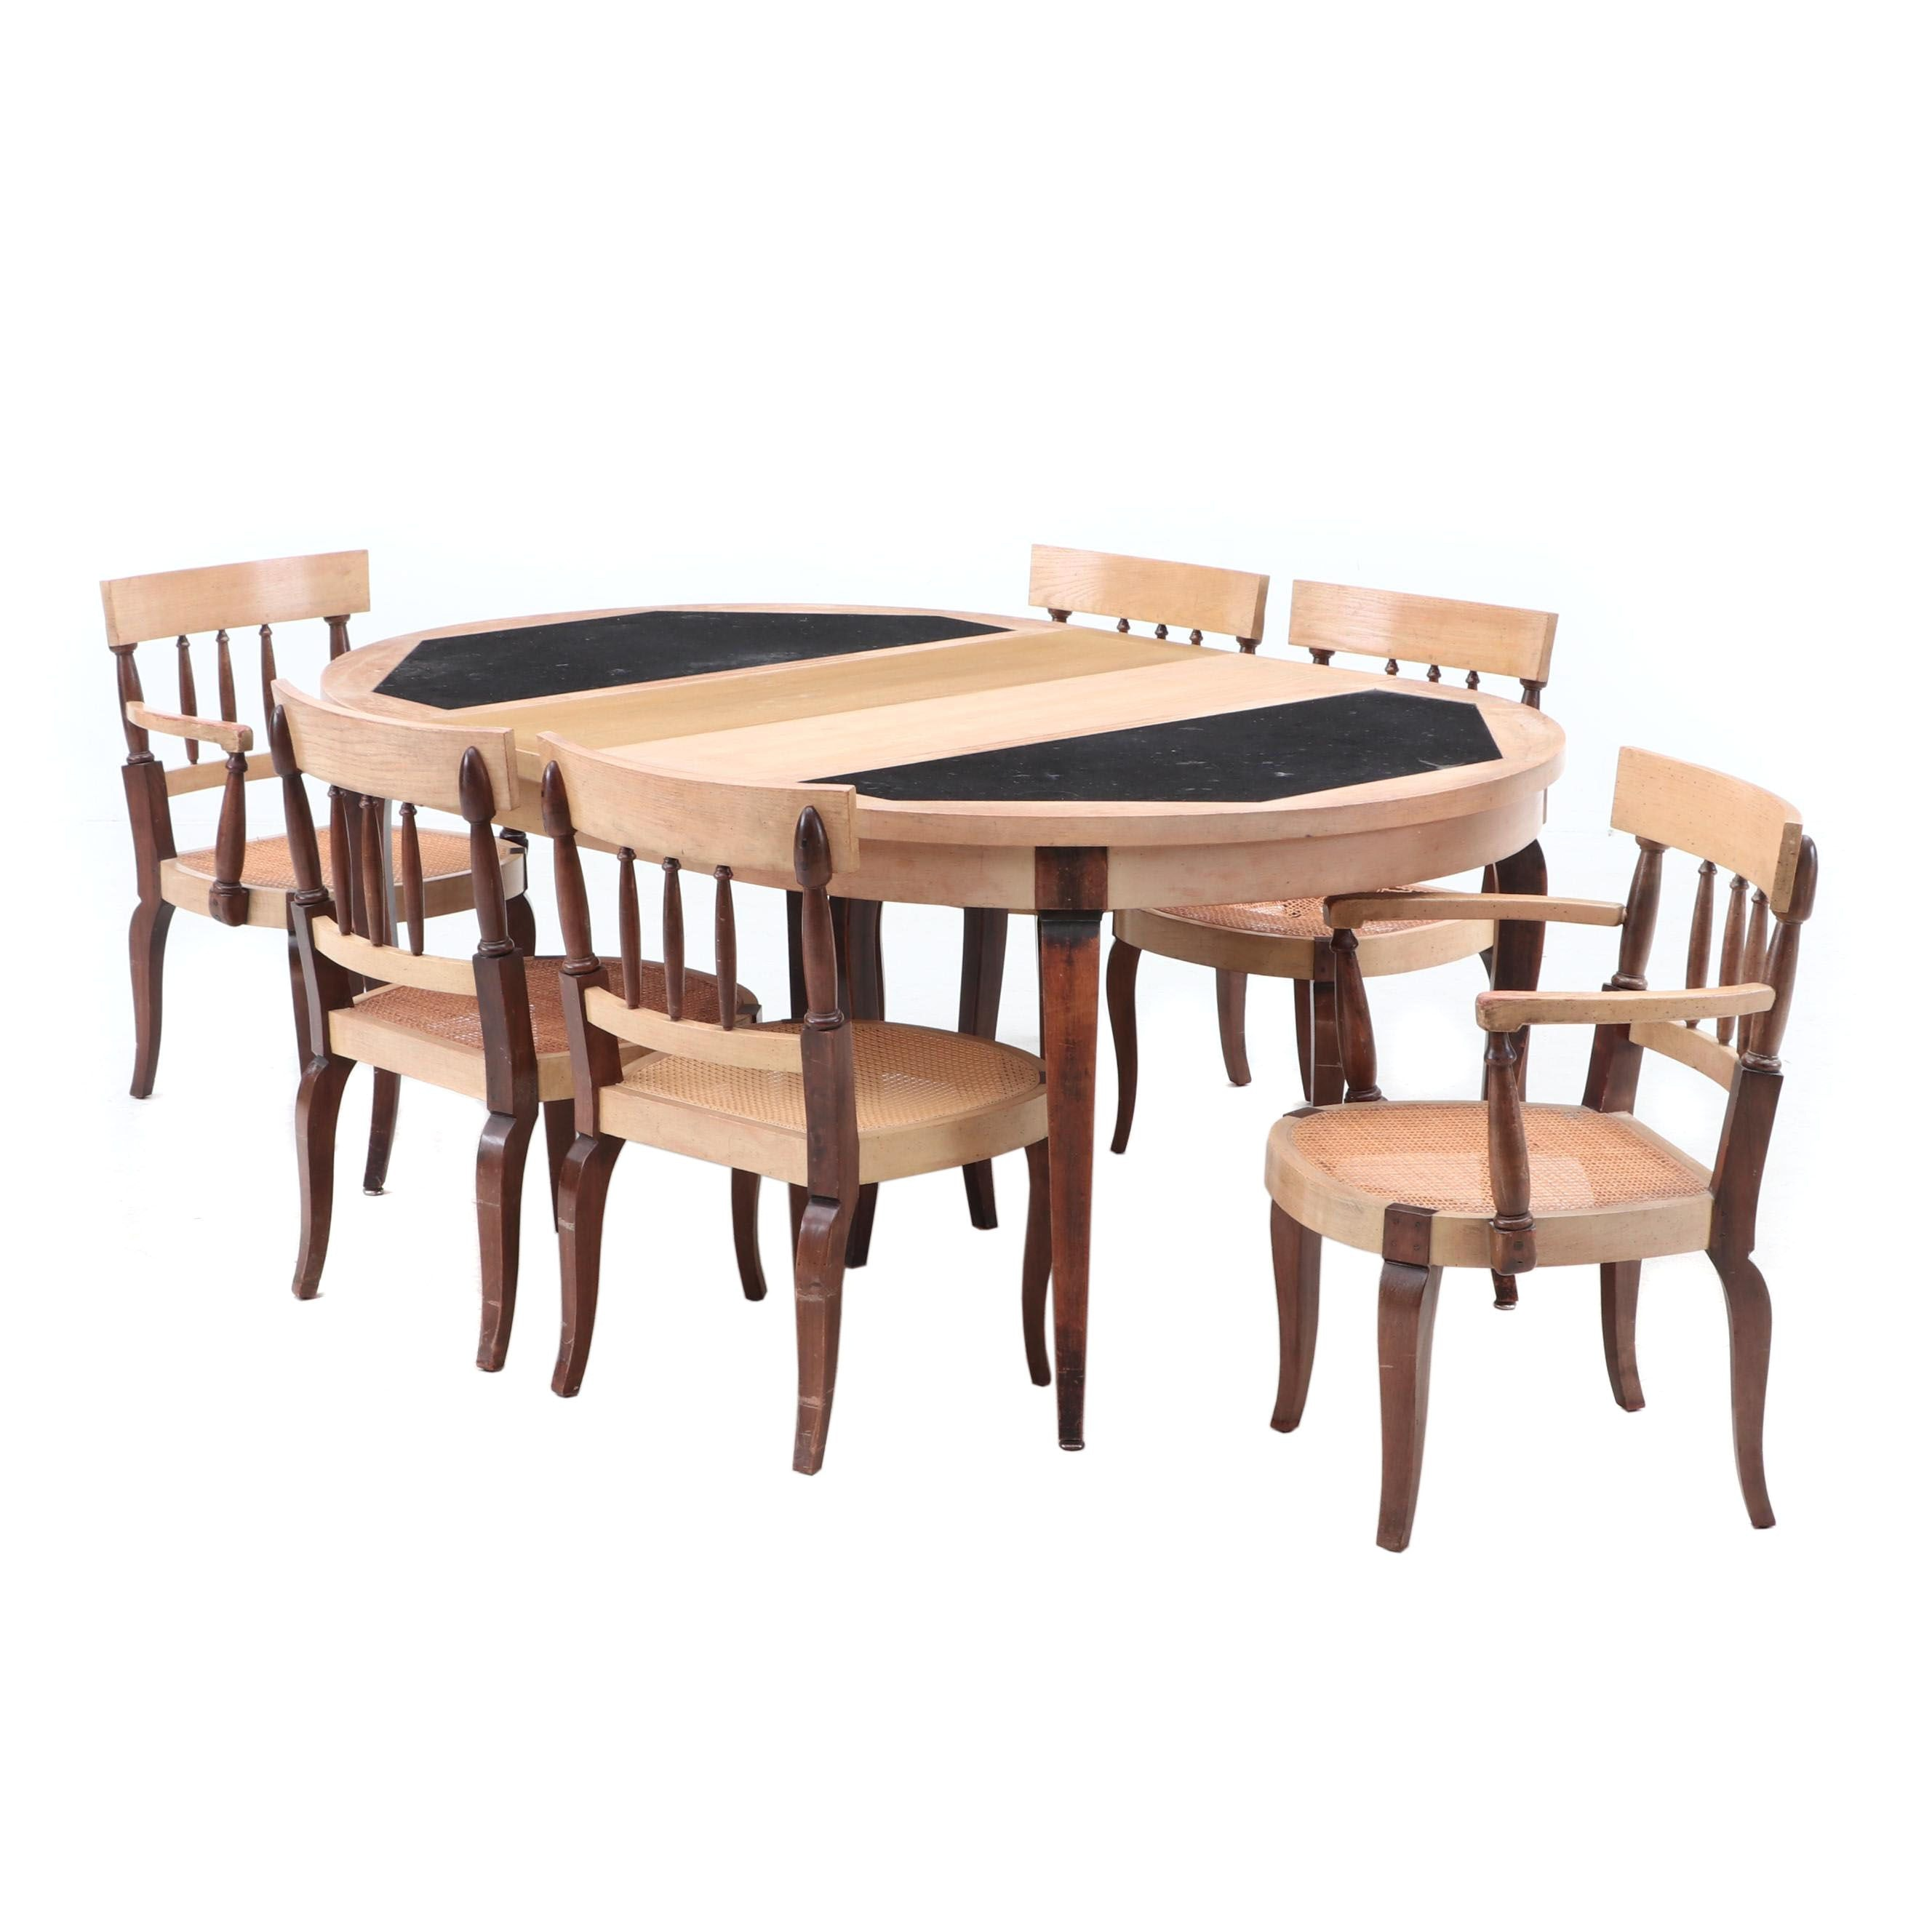 Granite Top Oak and Walnut Dining Table Set